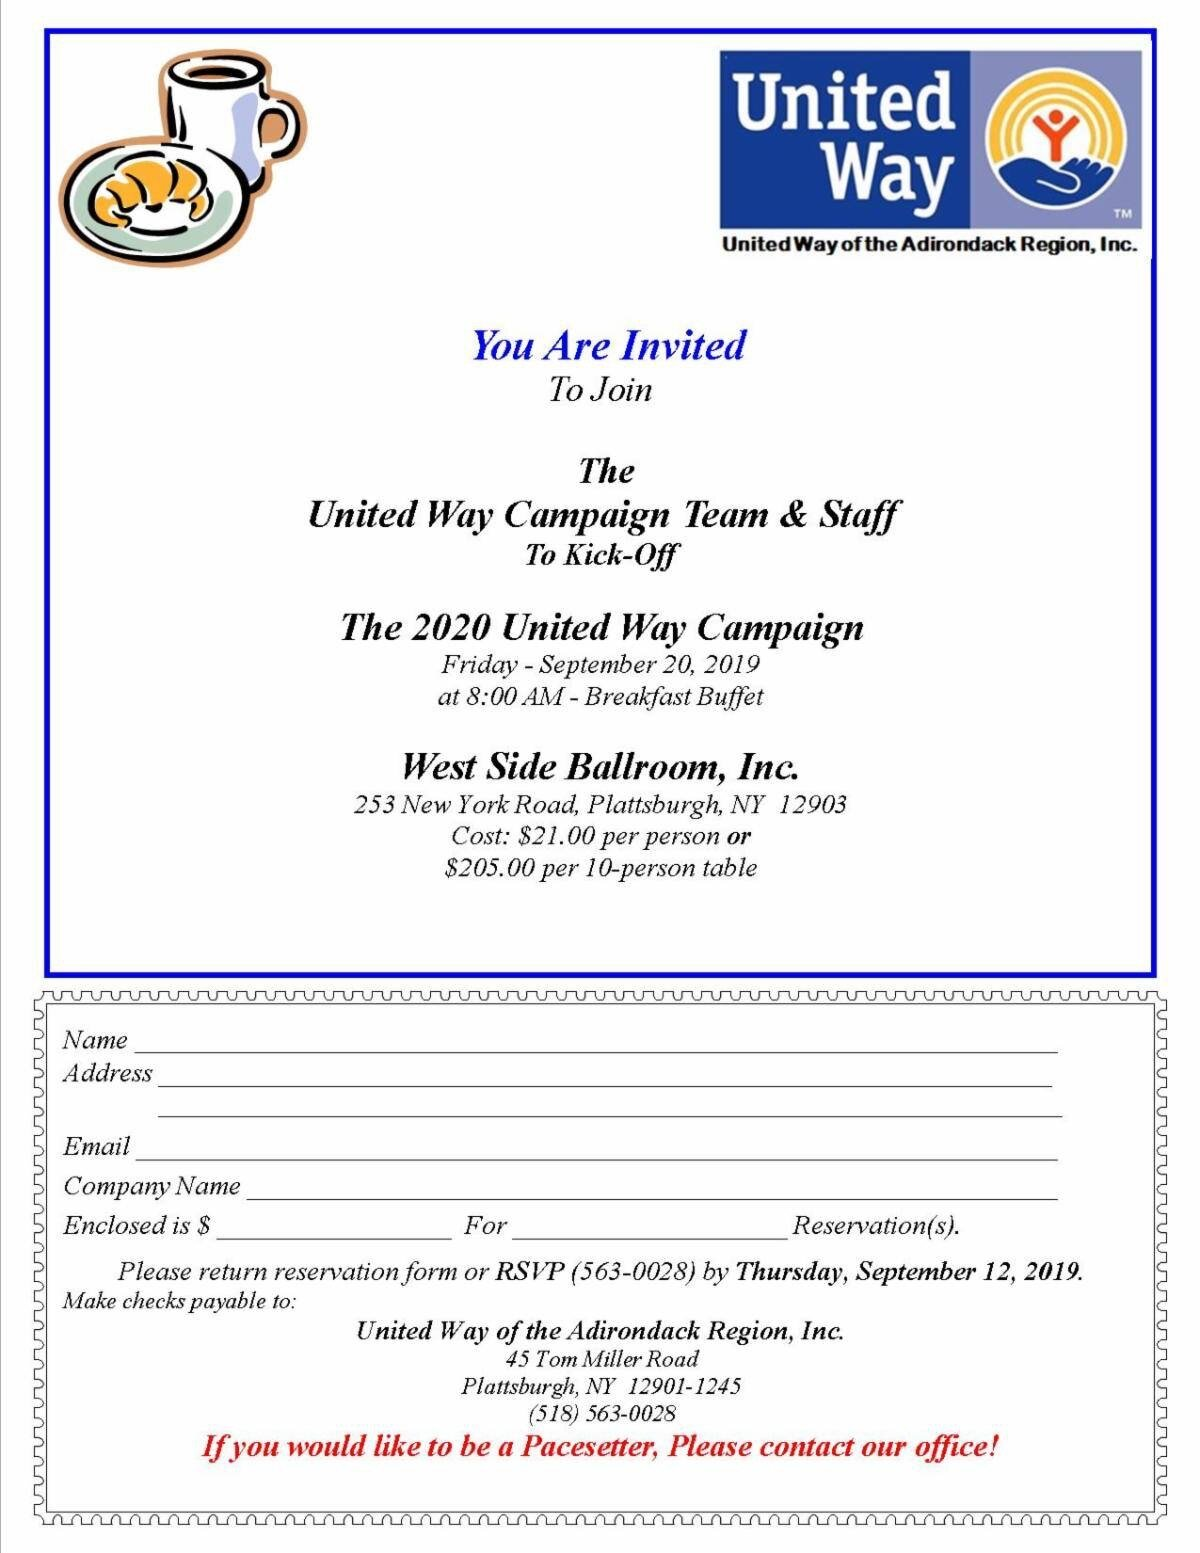 9/20/19: United Way of the Adirondack Region's 2020 Kick Off Campaign Breakfast - On September 20th, the United Way of the Adirondack Region is hosting their 2020 Kick Off Campaign Breakfast! To RSVP call (518) 563-0028.